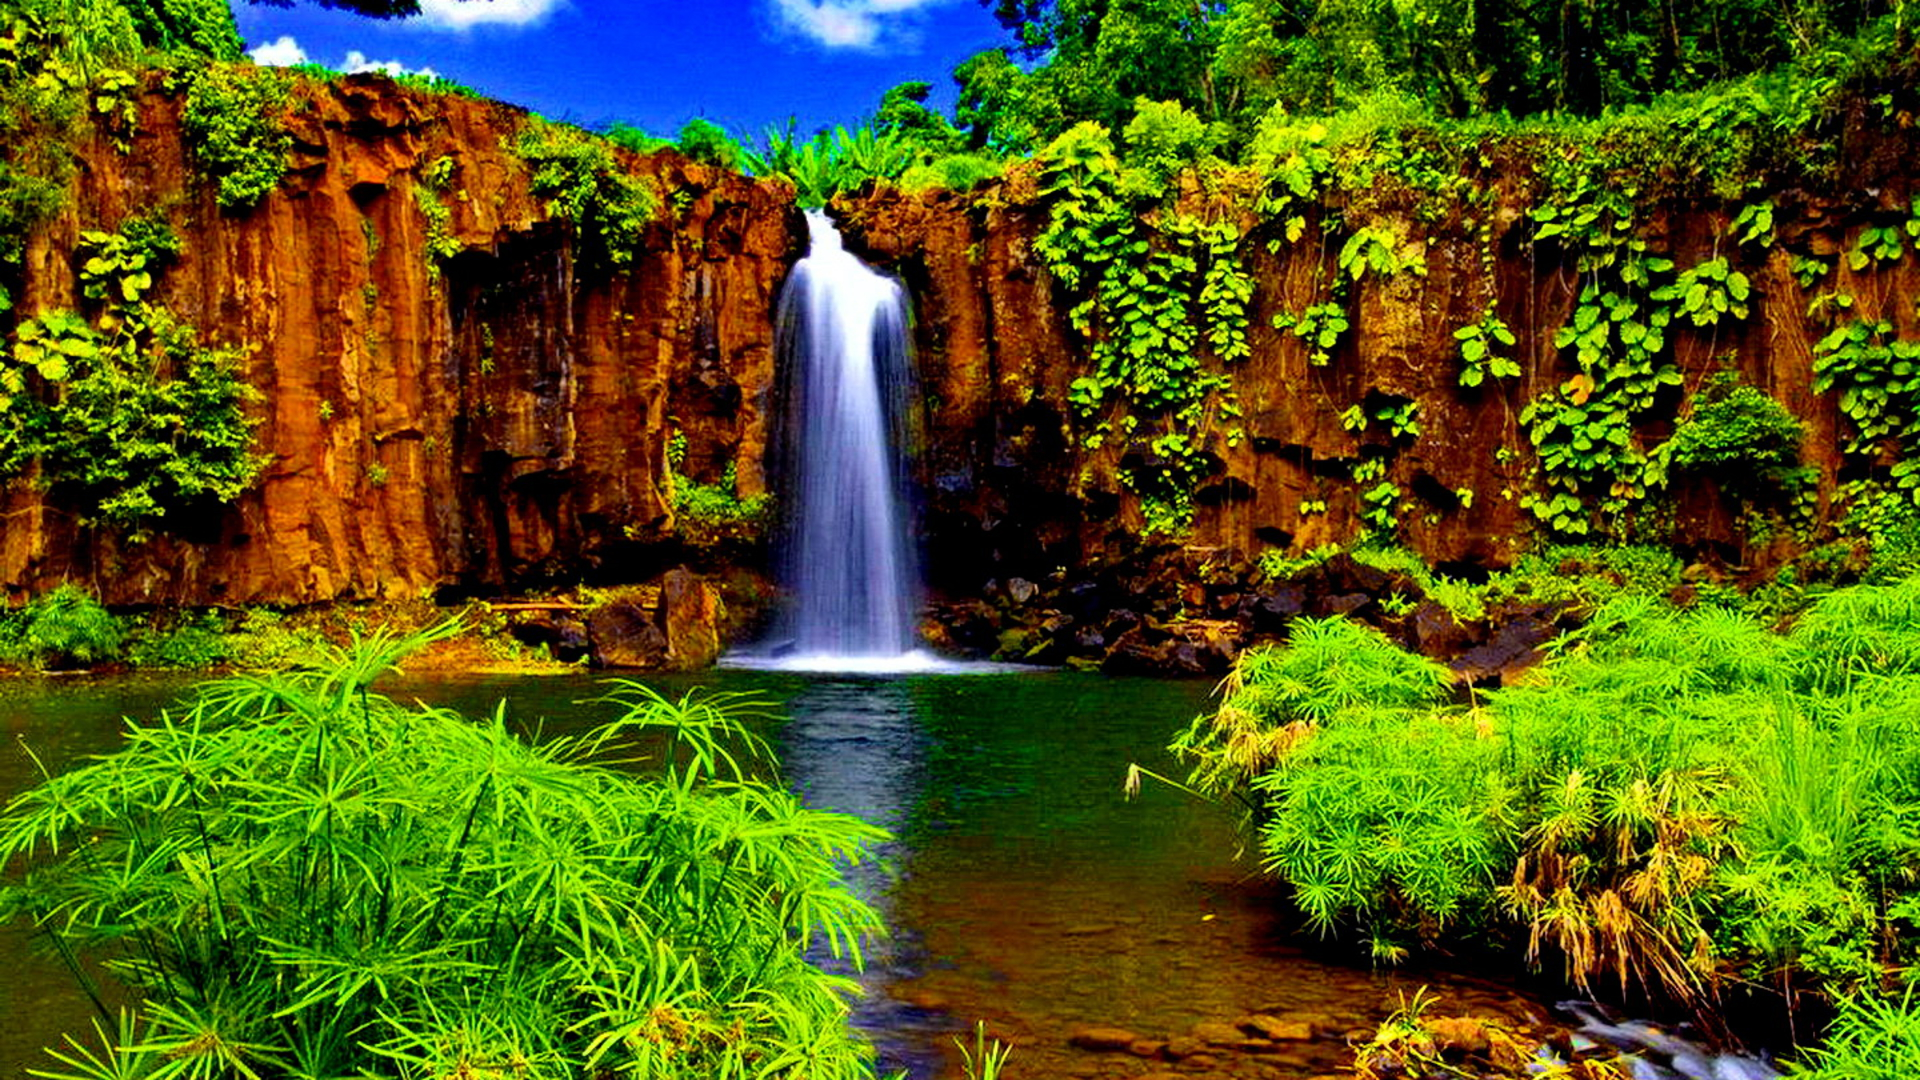 1920x1080 Hd Wallpapers Waterfall: Tropical Desktop Wallpaper 1920x1080